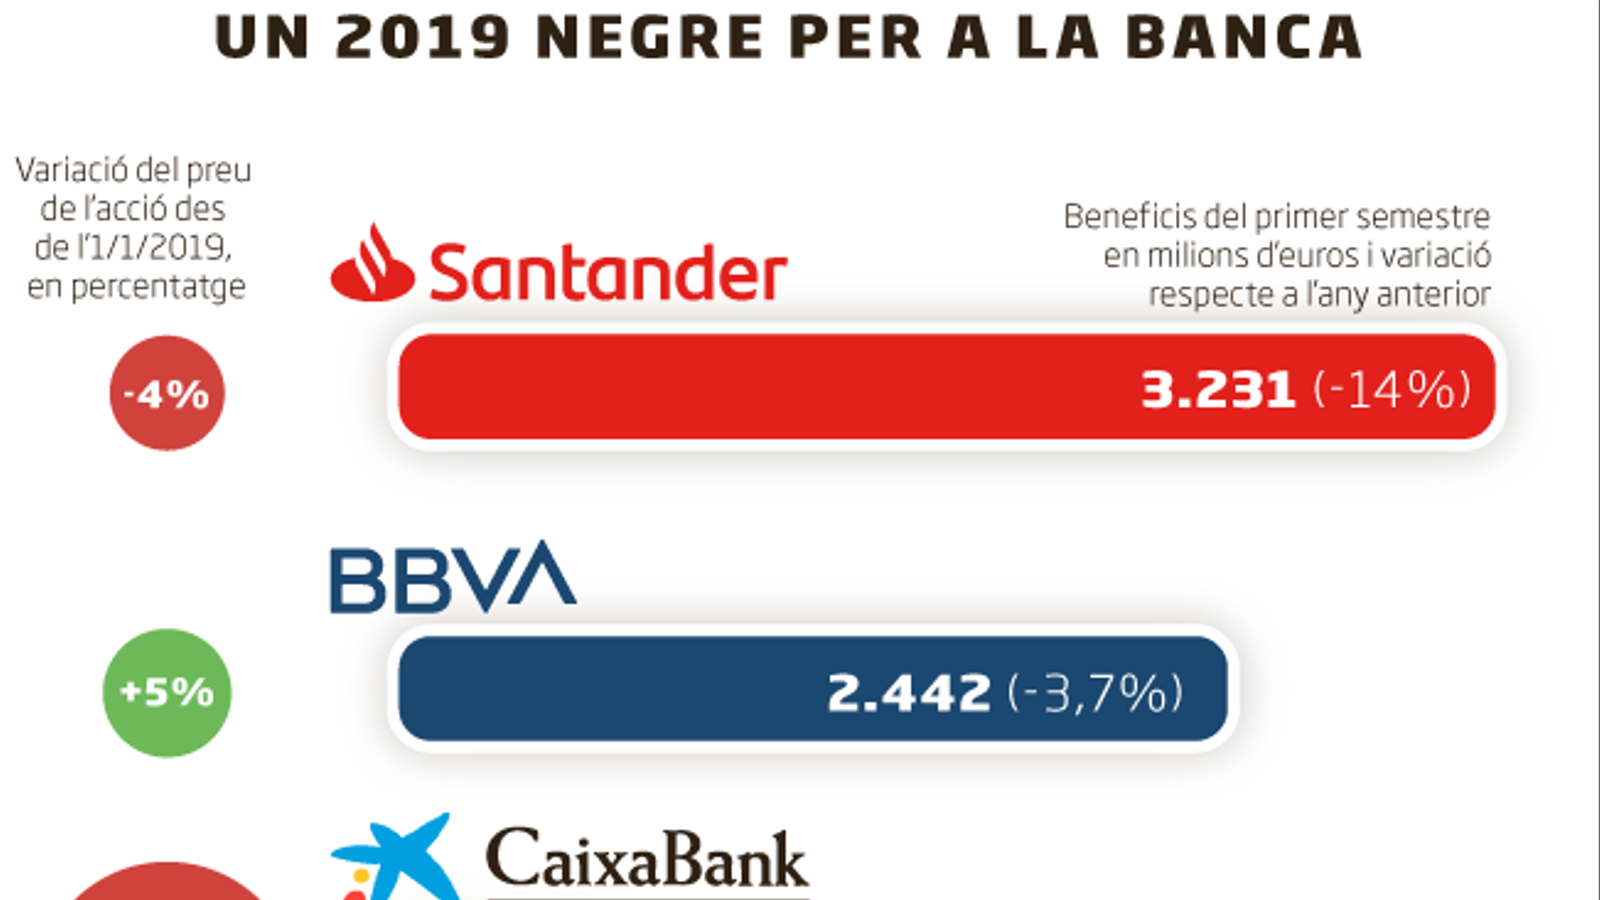 Un any d'ensurts per a la banca